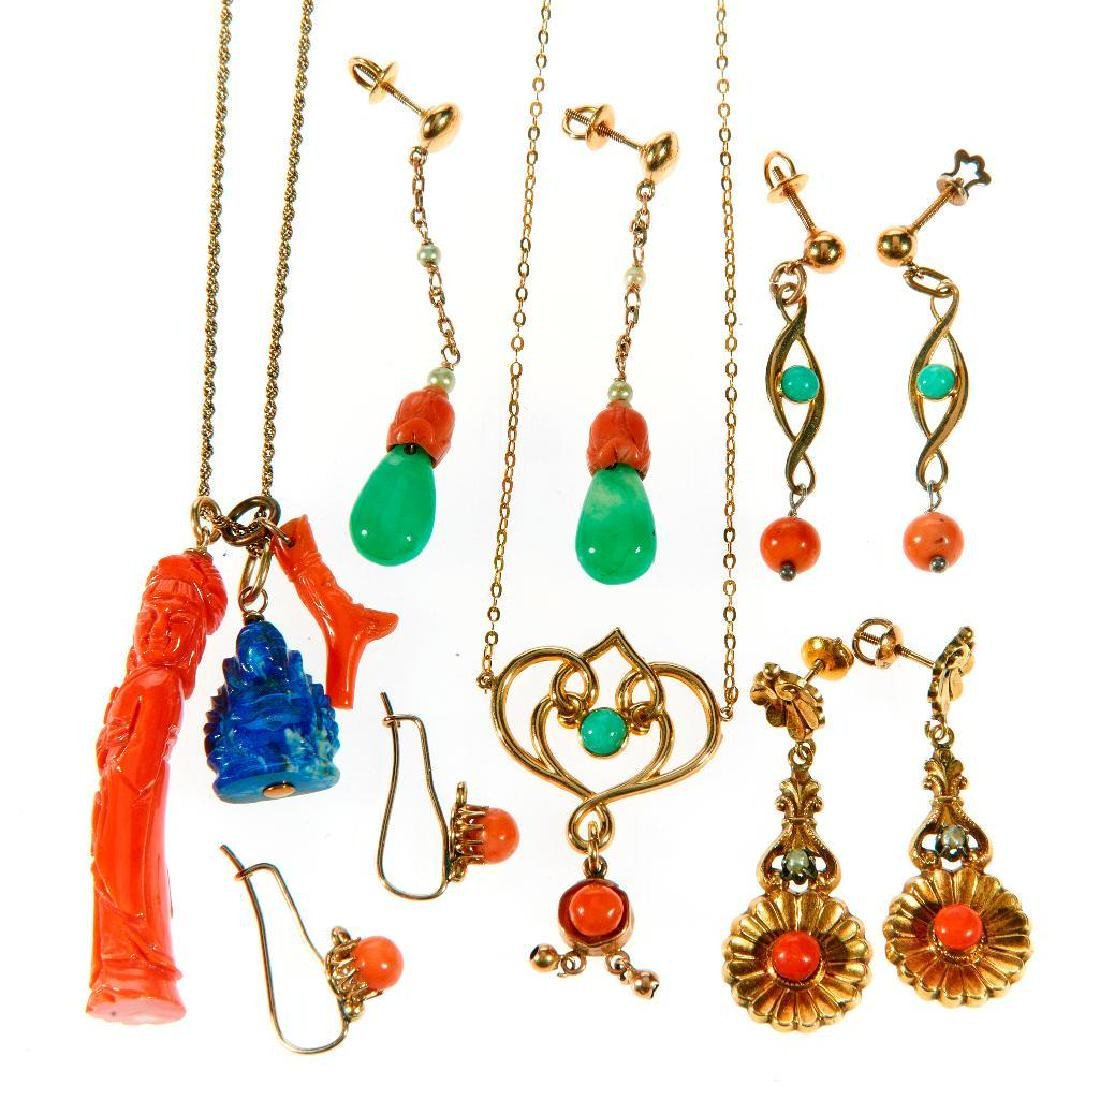 Collection of gemstone and 10k gold jewelry